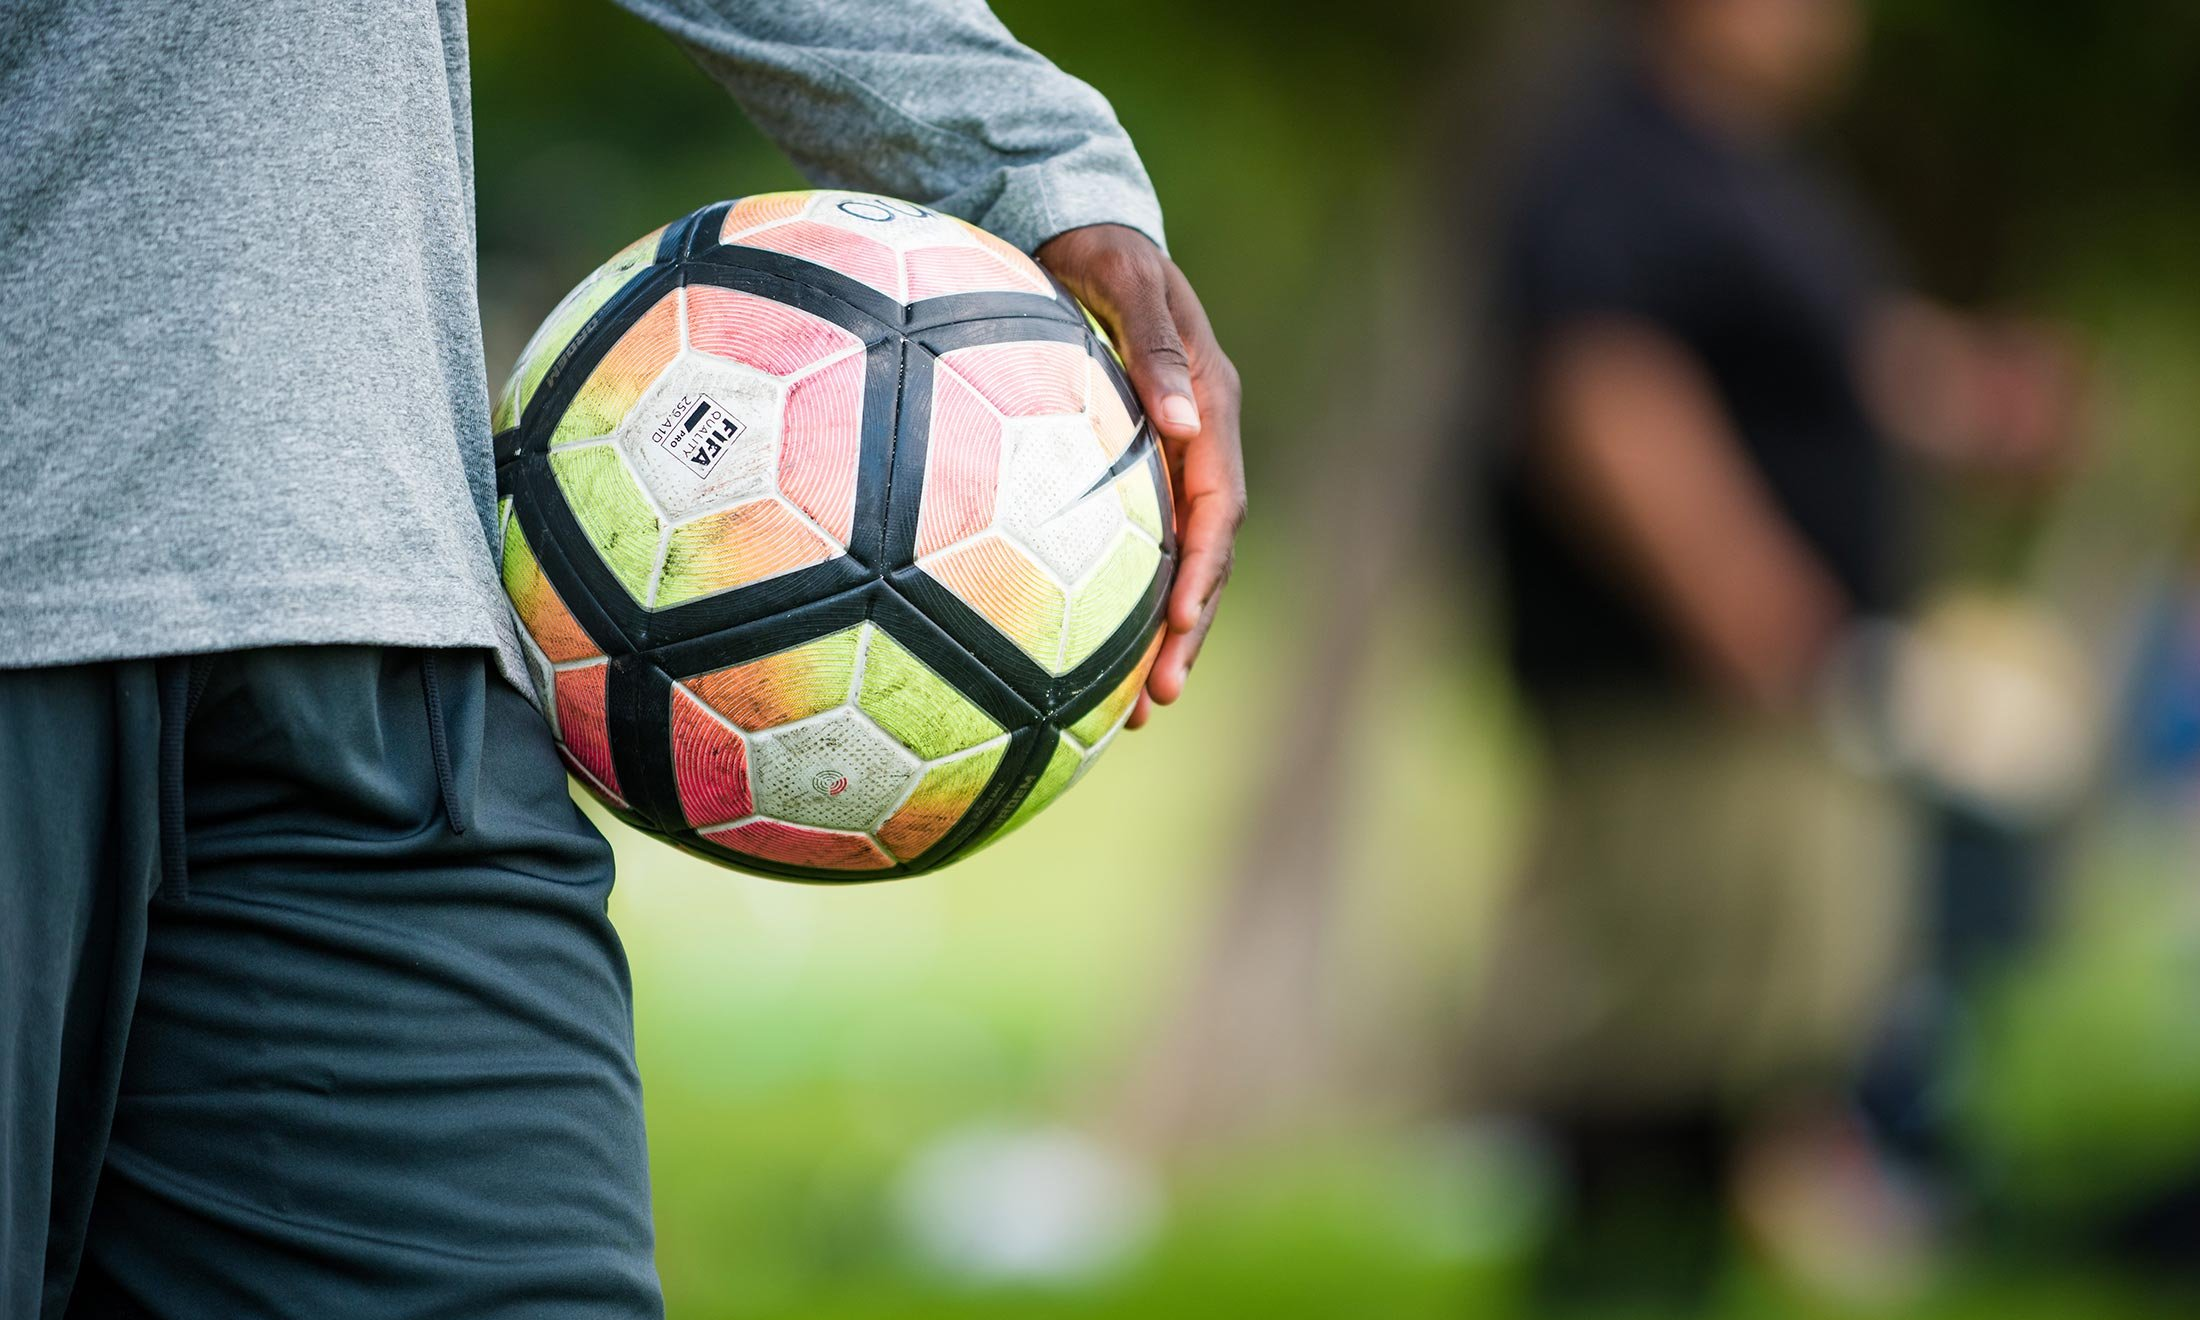 Close up of soccer player Wilfred Williams' hand holding a pink and yellow soccer ball at his side while outside during soccer practice